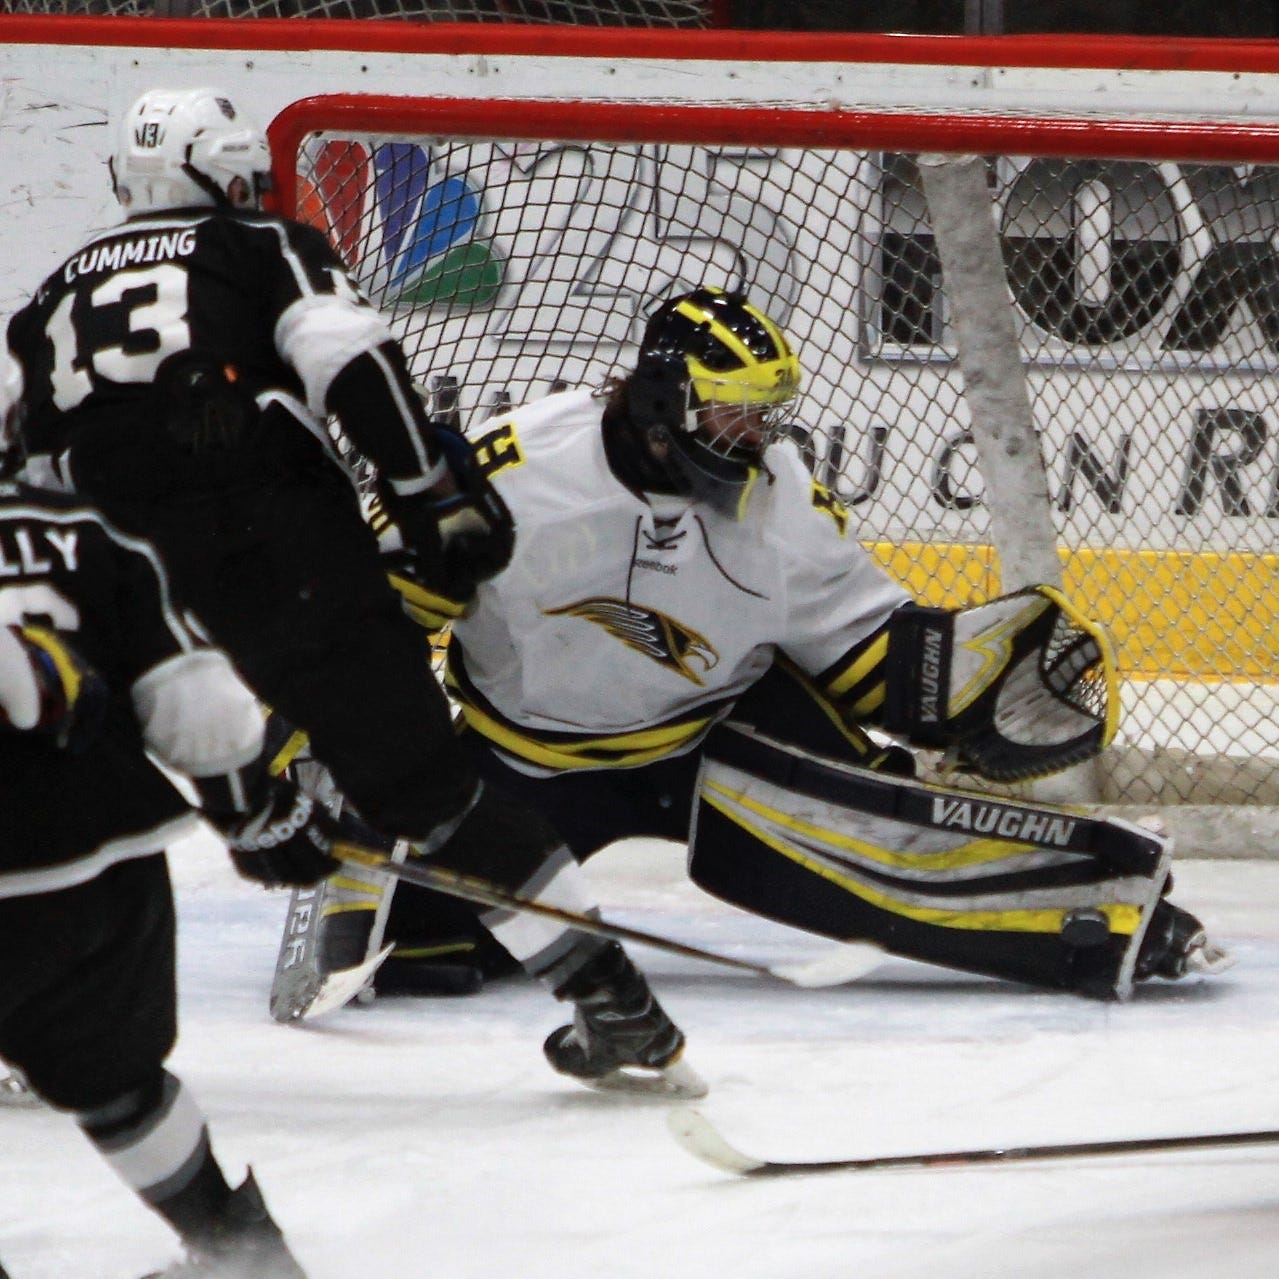 Hartland banking on goaltender after reaching another hockey semifinal